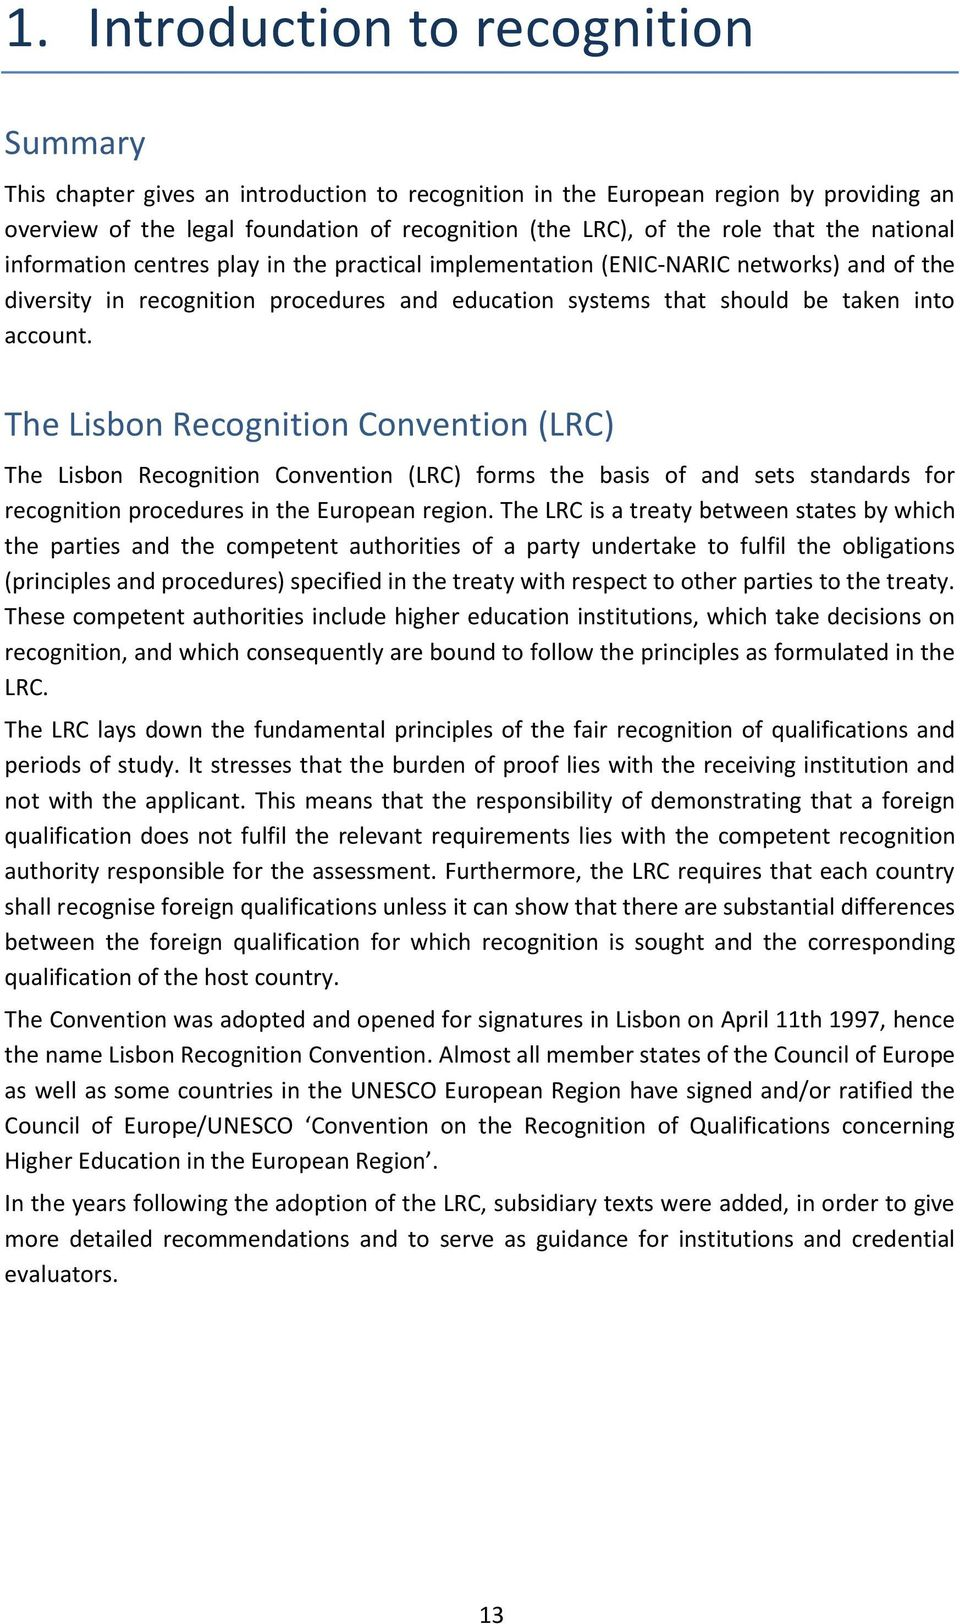 The Lisbon Recognition Convention (LRC) The Lisbon Recognition Convention (LRC) forms the basis of and sets standards for recognition procedures in the European region.